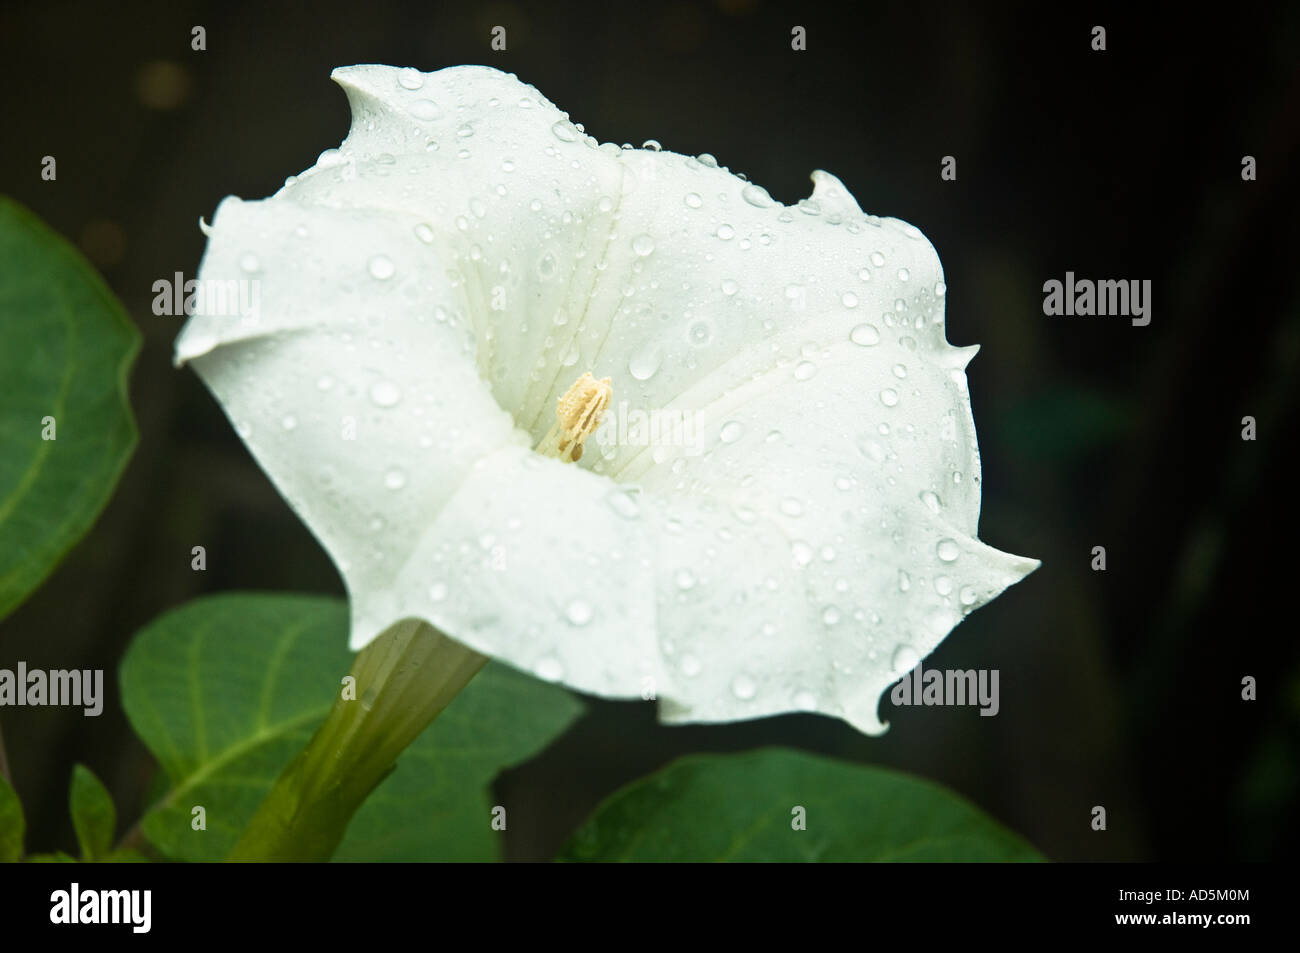 Closeup of a flower of Datura inoxia (D. innoxia) just after a rain. Space for copy. Camera: Nikon D2x. - Stock Image